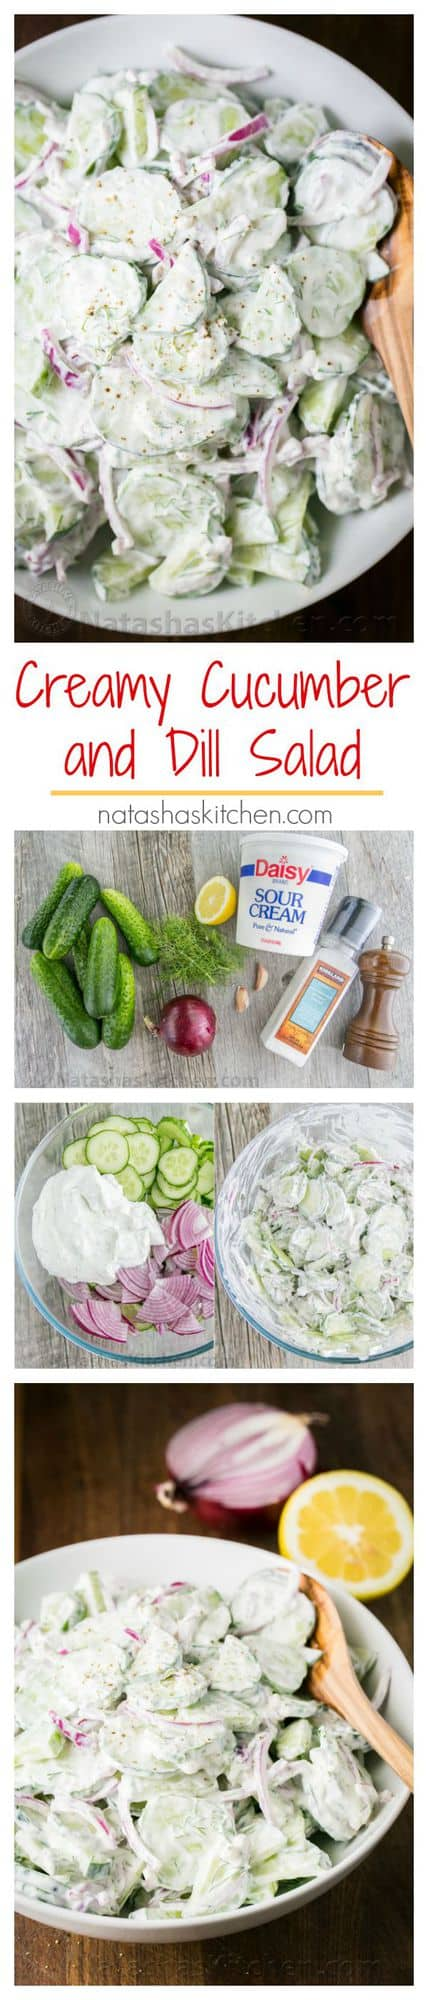 This German cucumber salad is easy, creamy and good. We love it year round but it's especially good with garden cucumbers! | natashaskitchen.com